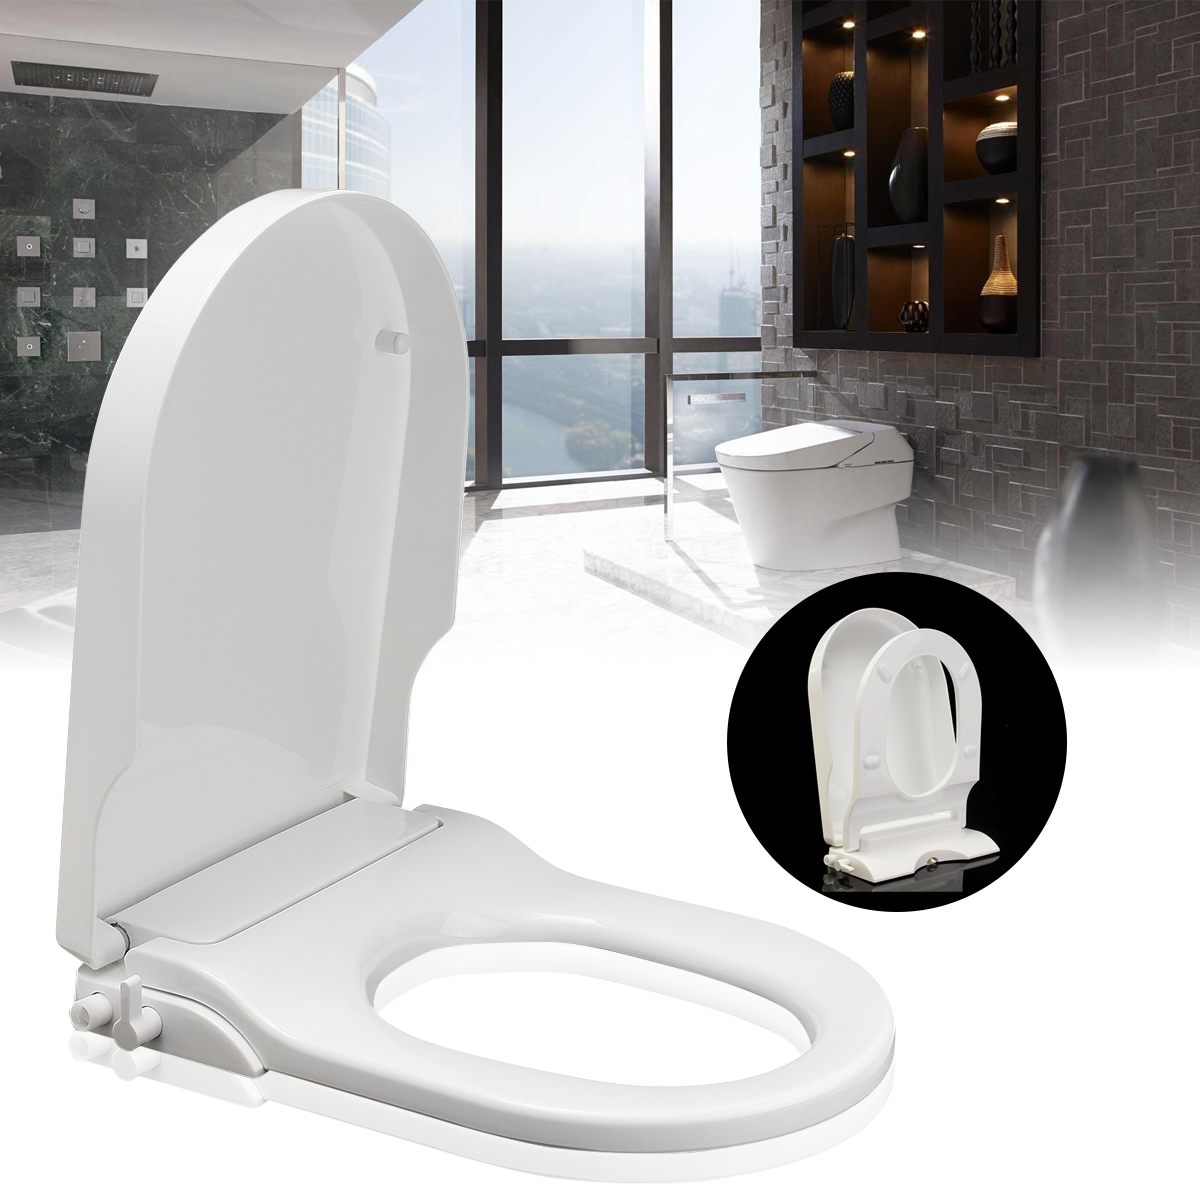 Xueqin Non Electric Toilet Seat Bidet Spray Nozzle Toilet